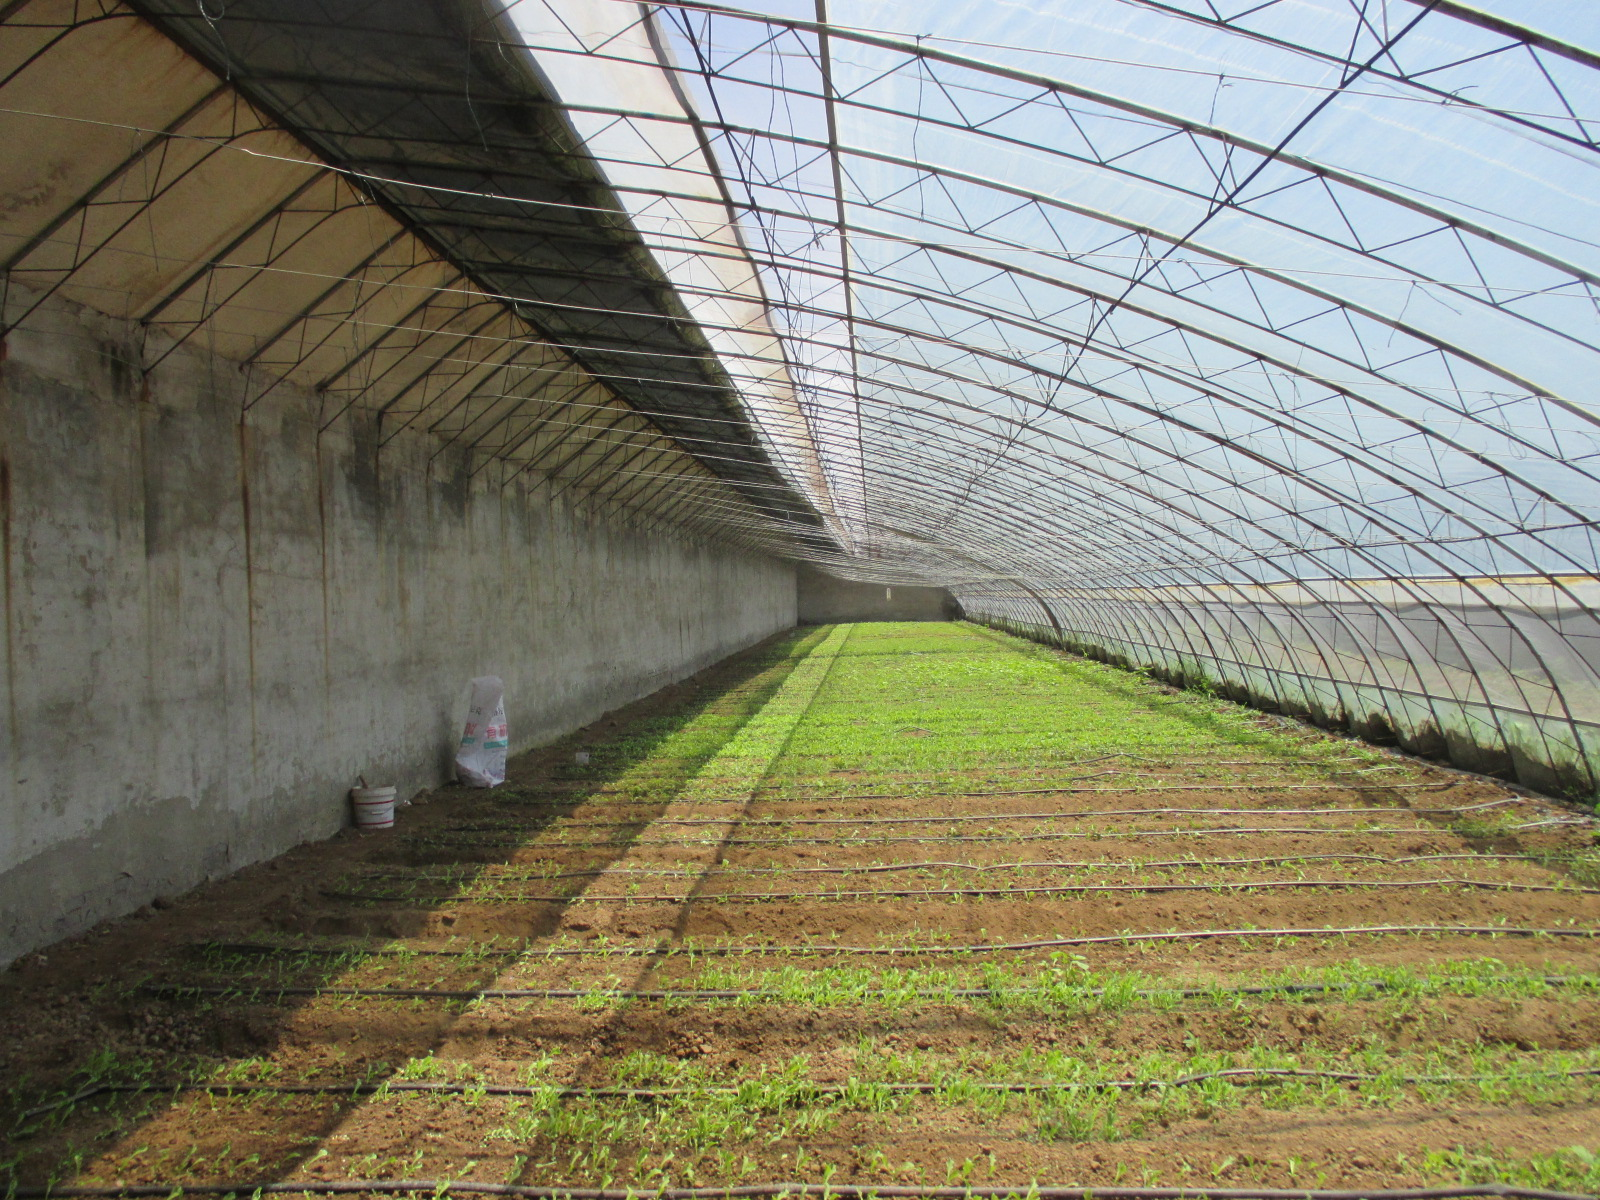 Leafy Vegetables Grown In A Chinese Style Solar Greenhouse